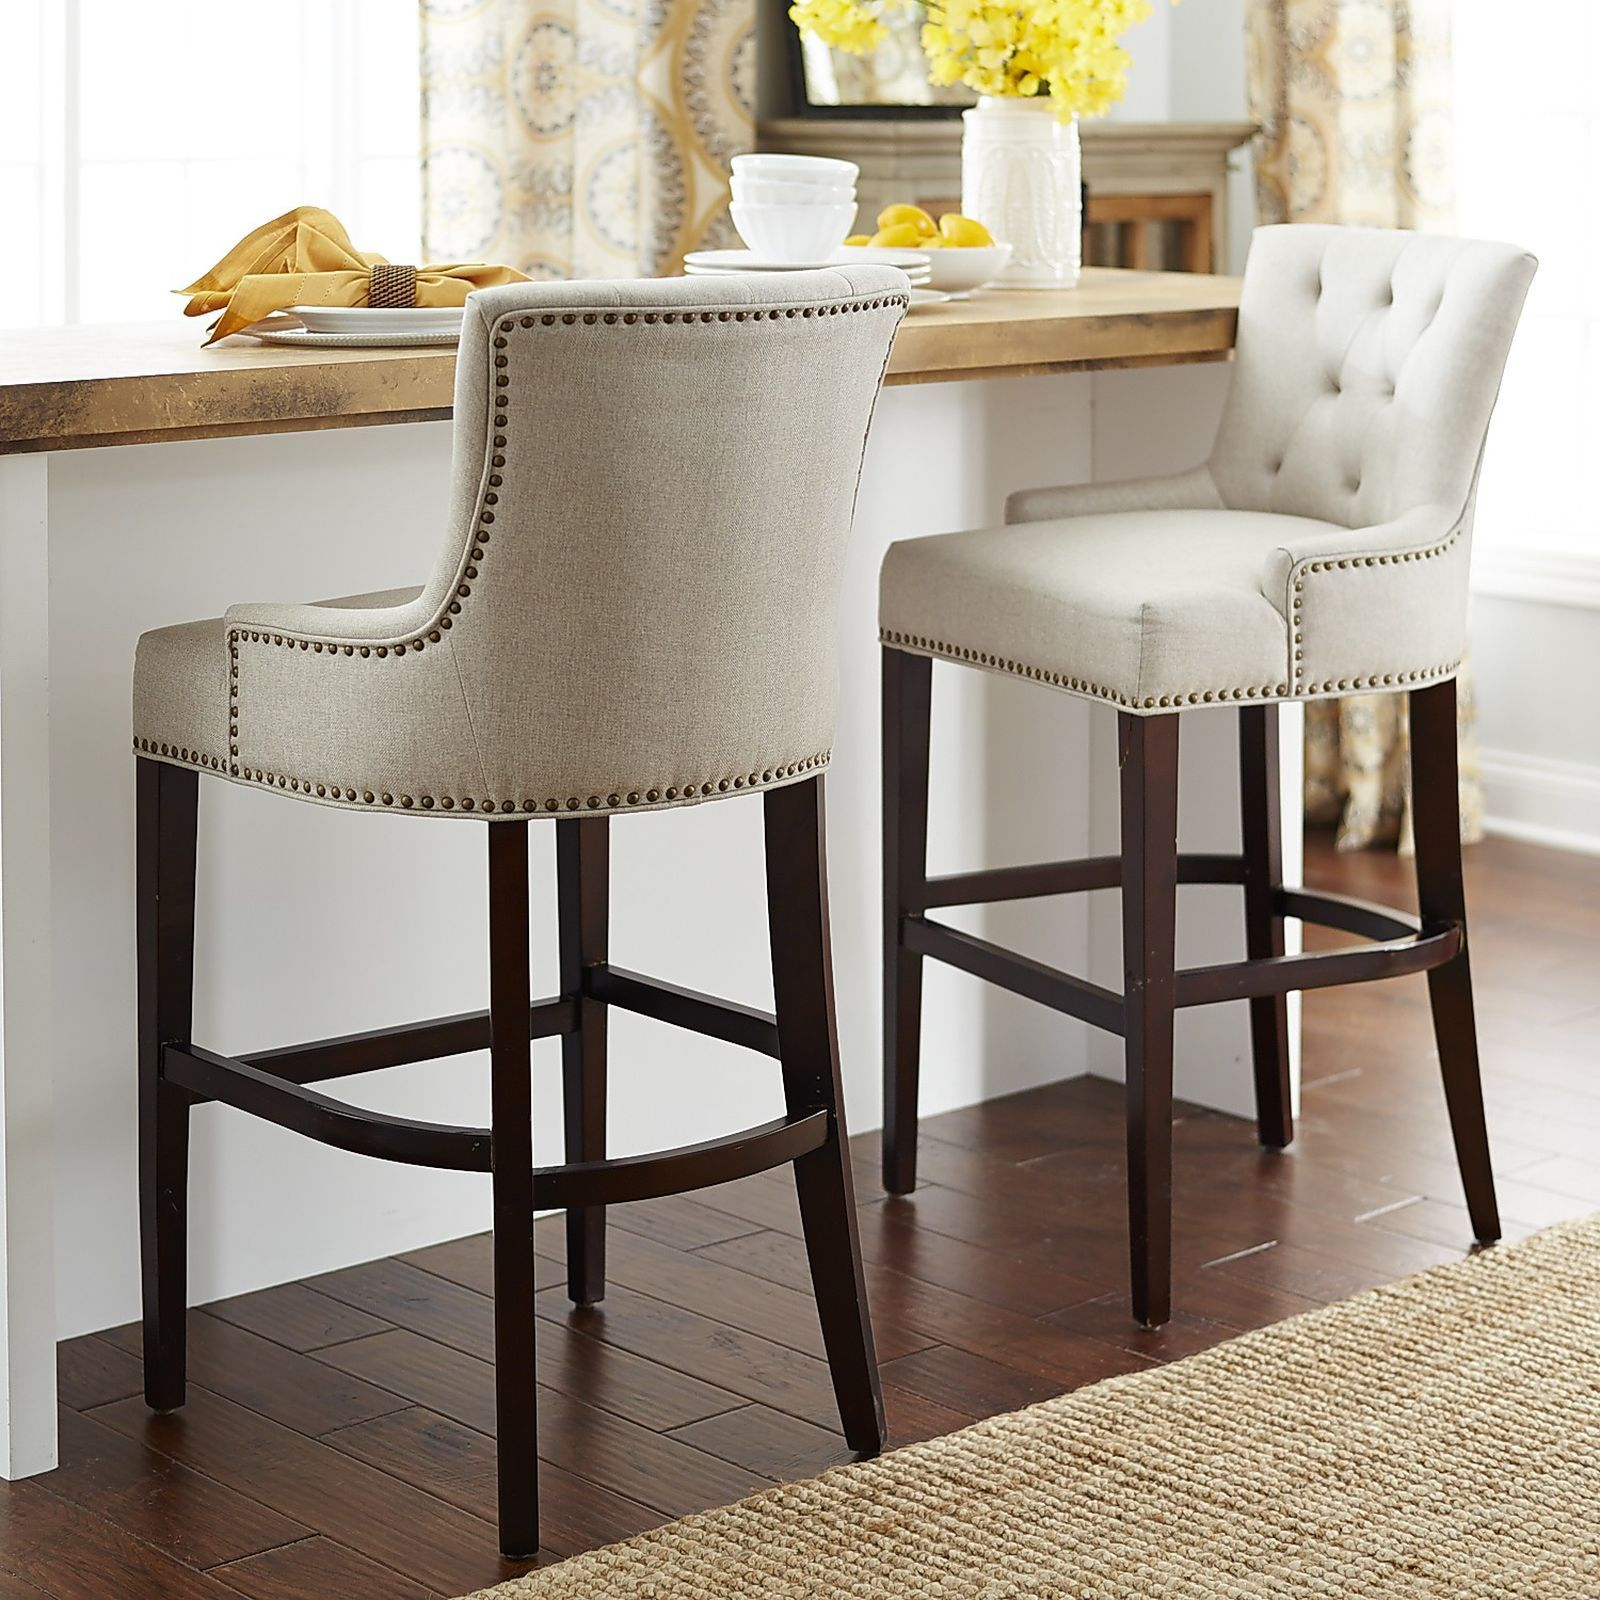 Ava flax counter bar stool ava stools and elegant for Bar stools for kitchen islands